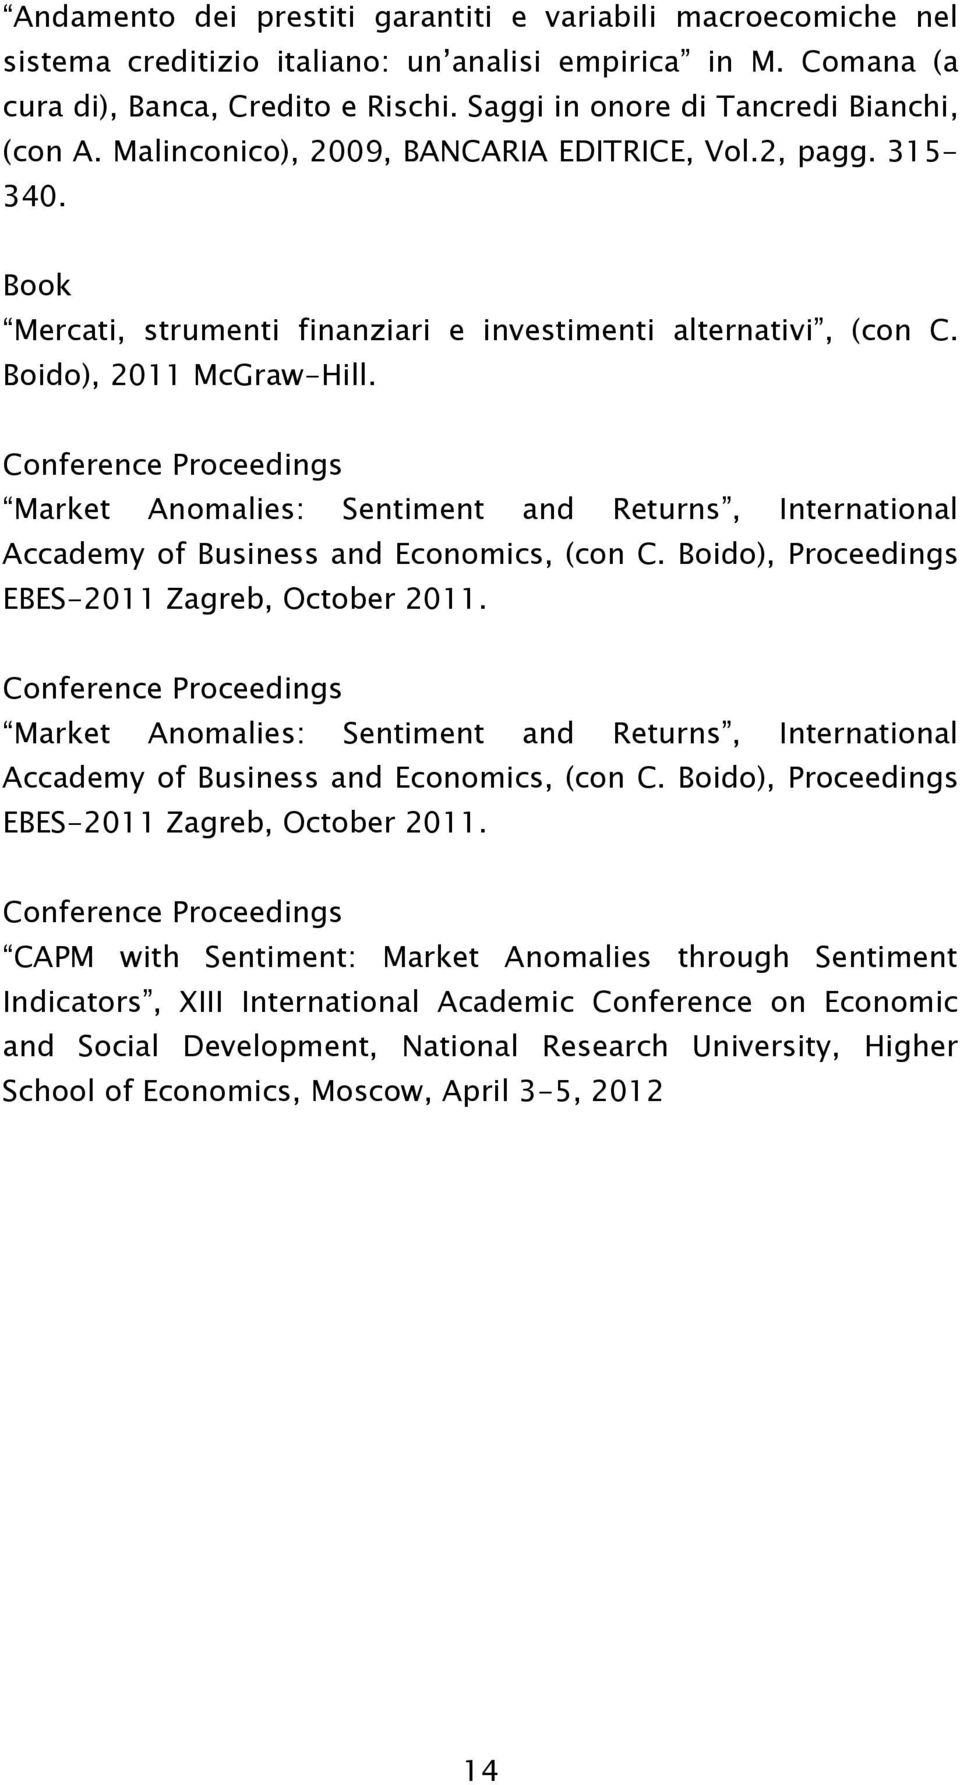 Boido), 2011 McGraw-Hill. Market Anomalies: Sentiment and Returns, International Accademy of Business and Economics, (con C. Boido), Proceedings EBES-2011 Zagreb, October 2011.